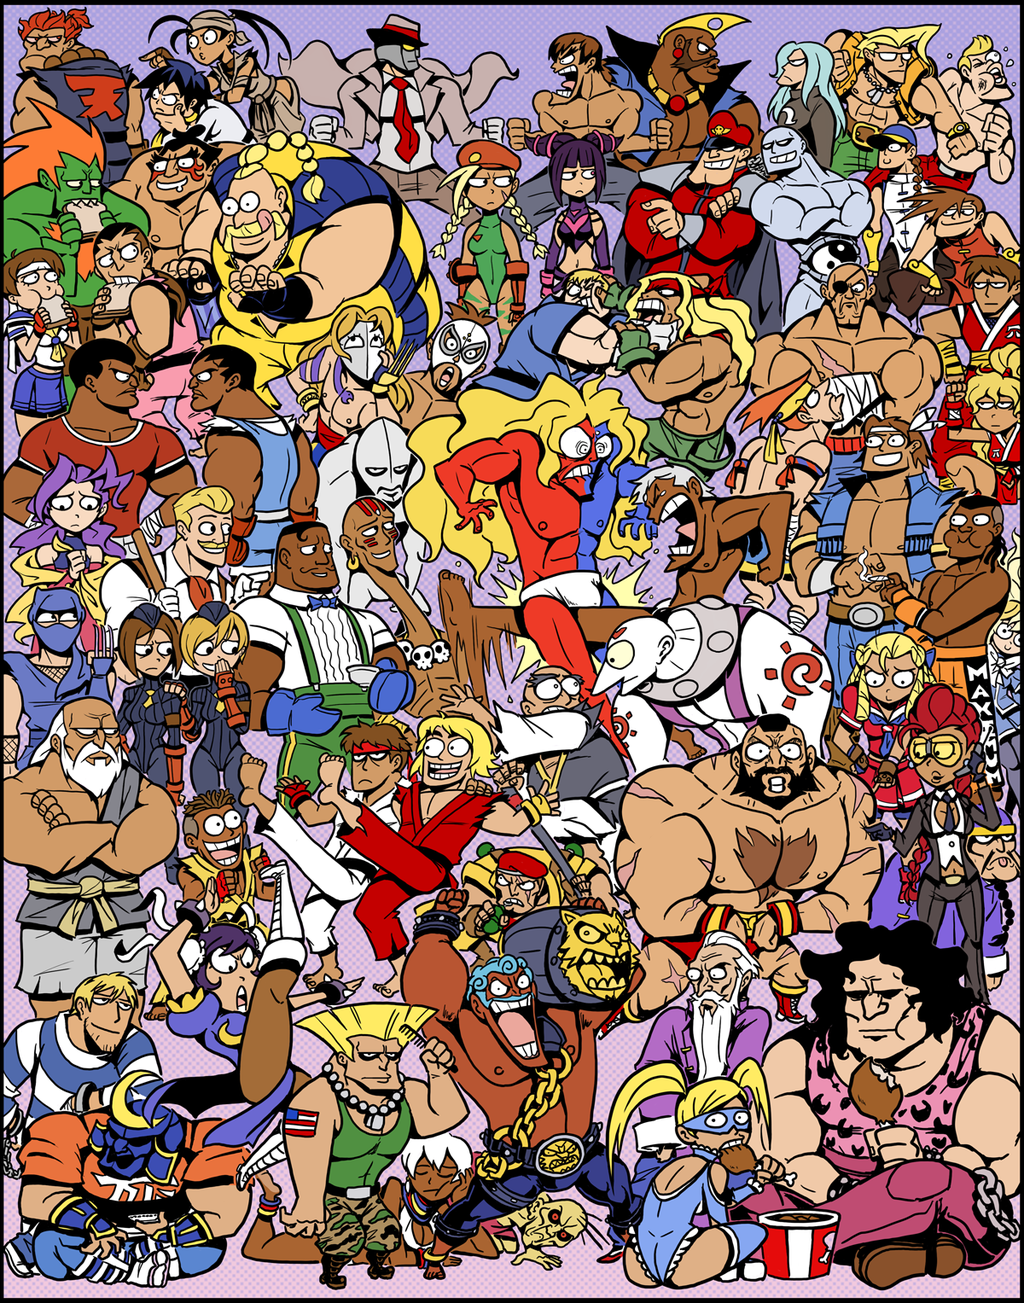 absolutely_everyone adon alex ass balrog birdie blanka blonde_hair blue_hair brown_hair cammy_white capcom_fighting_evolution captainosaka chain charlie_nash chicken_(food) chun-li cody crimson_viper dark_skin dee_jay dhalsim dudley eagle_(street_fighter) edmond_honda el_fuerte elena everyone eyepatch facial_hair fei_long food formal gai_(final_fight) geki gen_(street_fighter) genryuusai_maki gill gouken gouki groin_kick guile guy hakan han_juri hibiki_dan highres hugo_andore ibuki ingrid joe_(street_fighter) juli juni kanzuki_karin kasugano_sakura ken_masters lee lee_(street_fighter) m_bison maki_(final_fight) makoto marijuana mask mike_(street_fighter) muscle mustache necro necro_(street_fighter) pantyhose purple_hair q rainbow_mika red_eyes remy retsu rolento rose_(street_fighter) rufus_(street_fighter) ryuu_(street_fighter) sagat scar school_uniform sean_matsuda serafuku seth_(street_fighter) sodom street_fighter street_fighter_ii street_fighter_iii street_fighter_iv street_fighter_zero street_fighter_zero_ii street_fighter_zero_iii suit thunder_hawk twelve twintails urien vega yang_lee yun_lee zangief